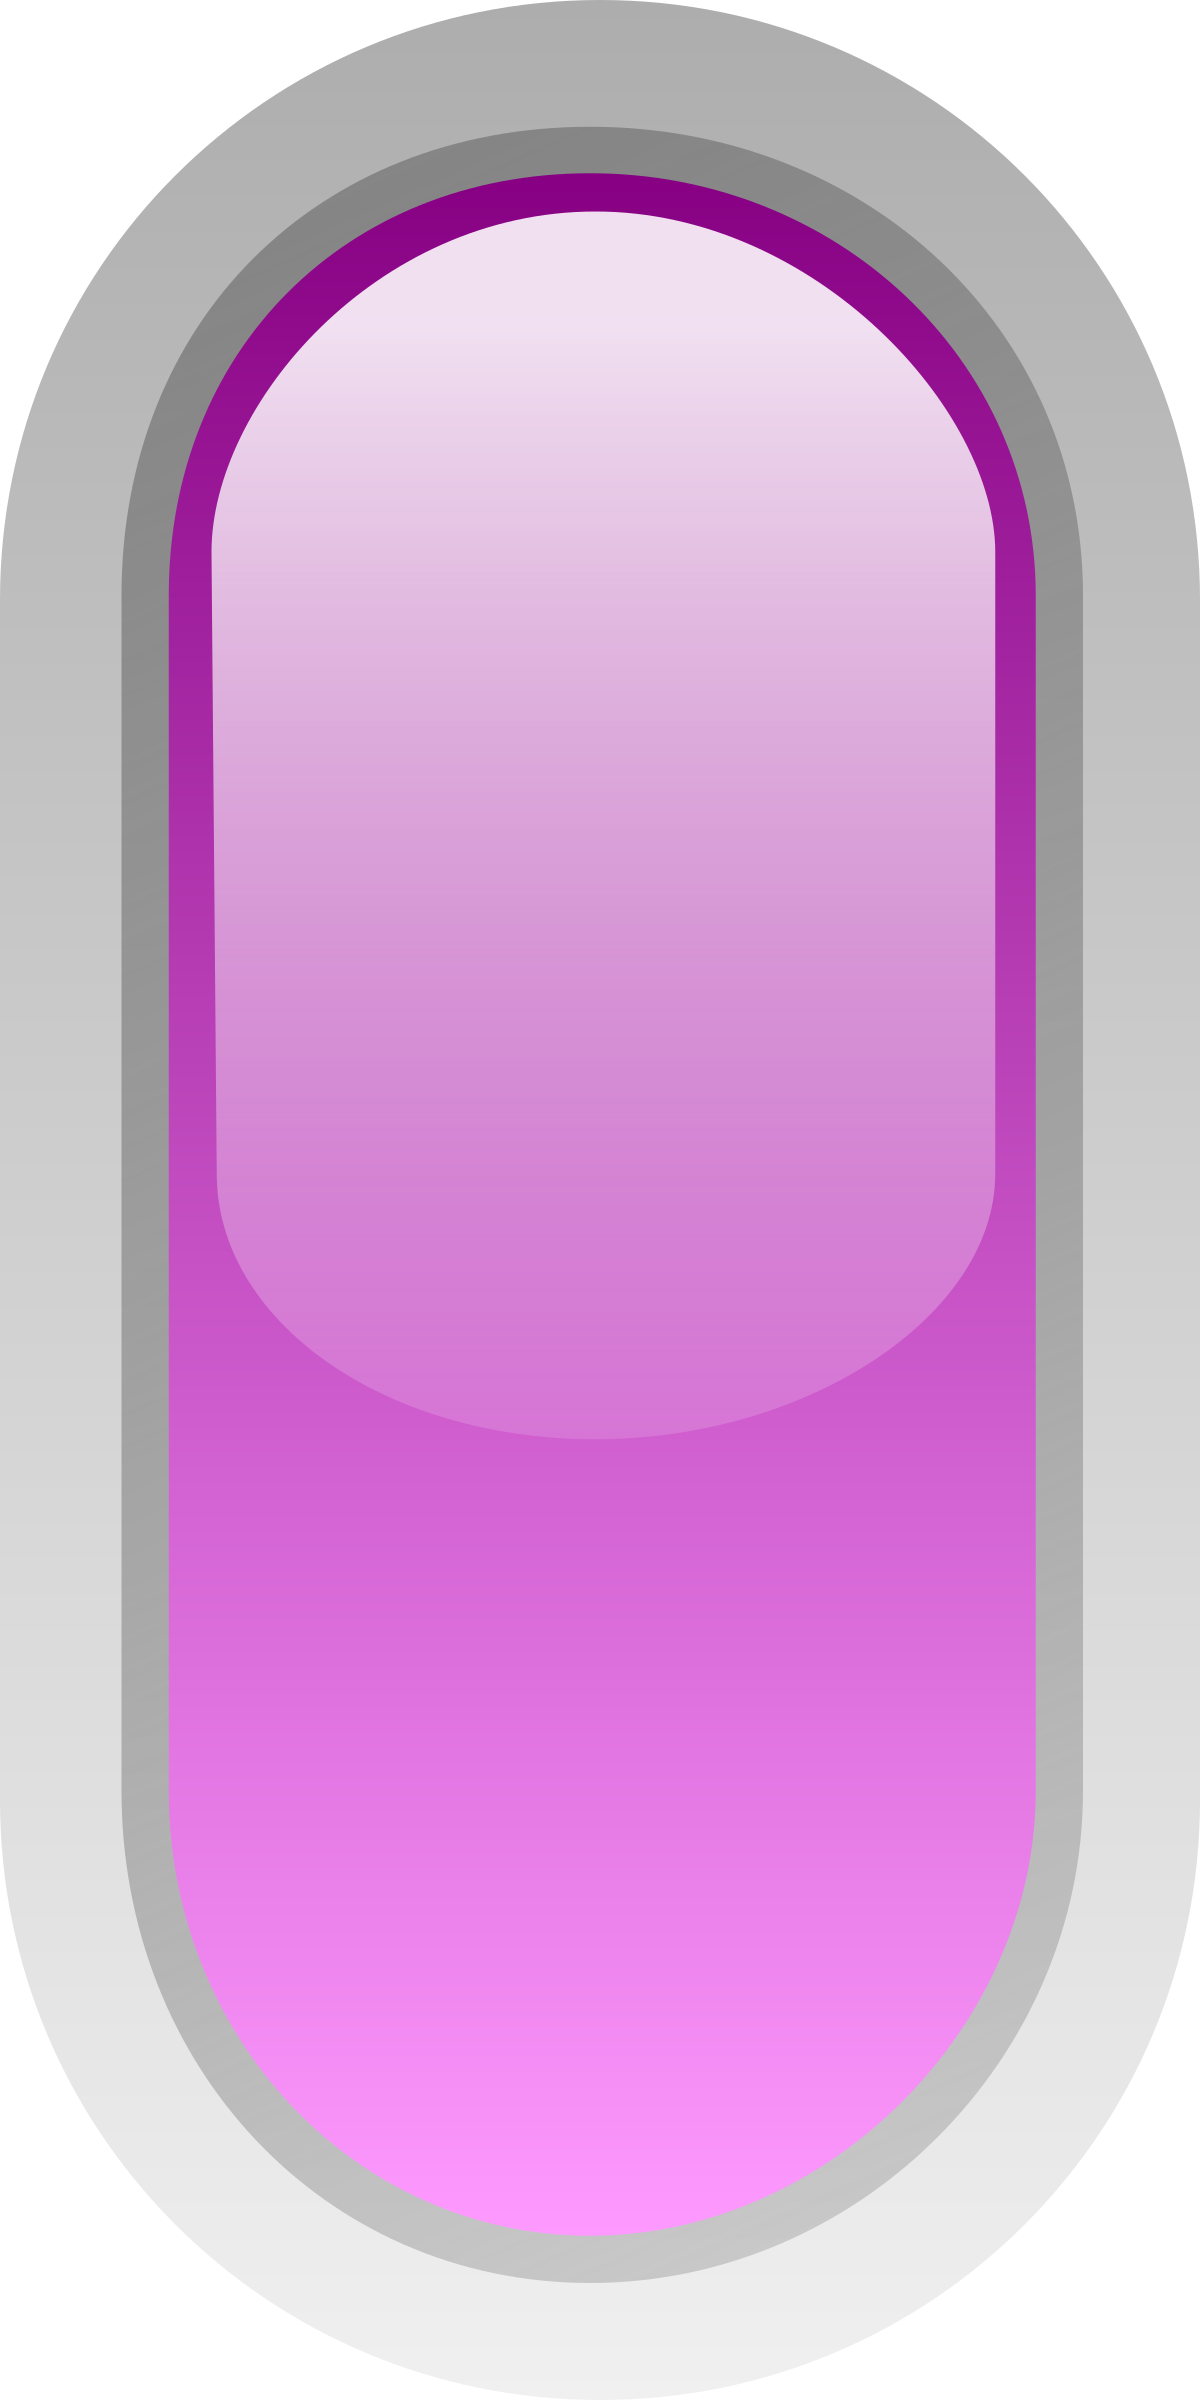 led rounded v purple by jean_victor_balin